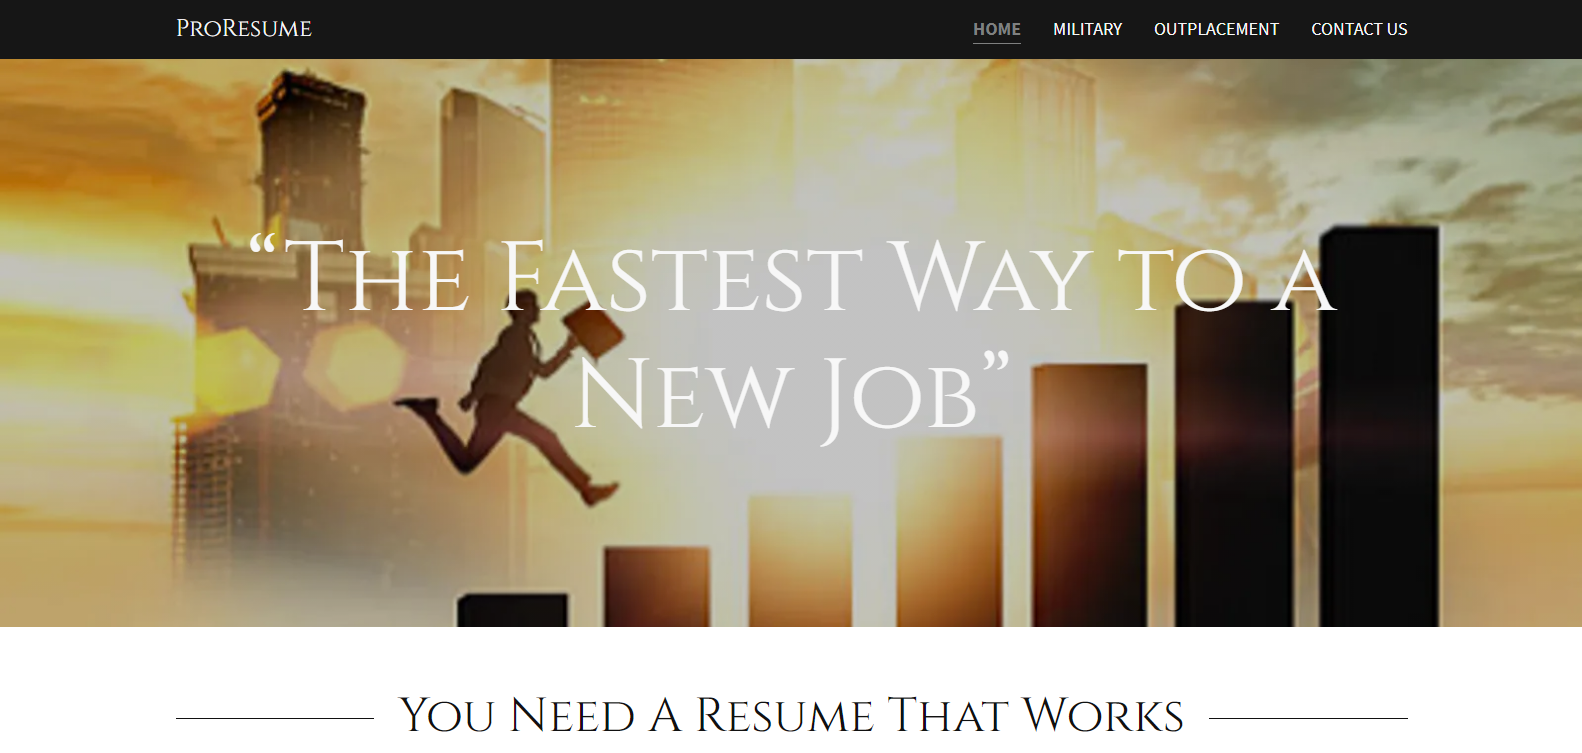 10 Best Military Resume Writing Services in 2021 – Screenshot of ProResume Homepage